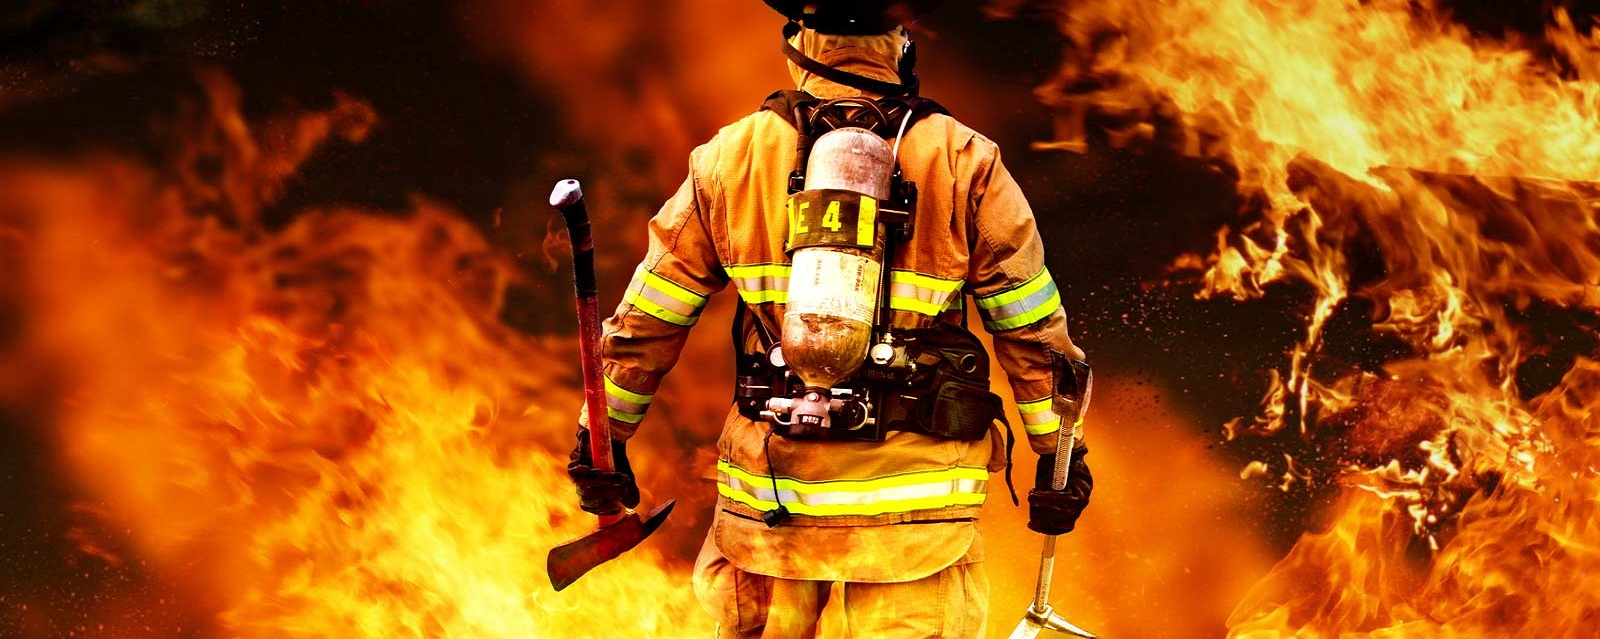 Fire Safety Expo, Fire Fighting & Safety Equipment Trade